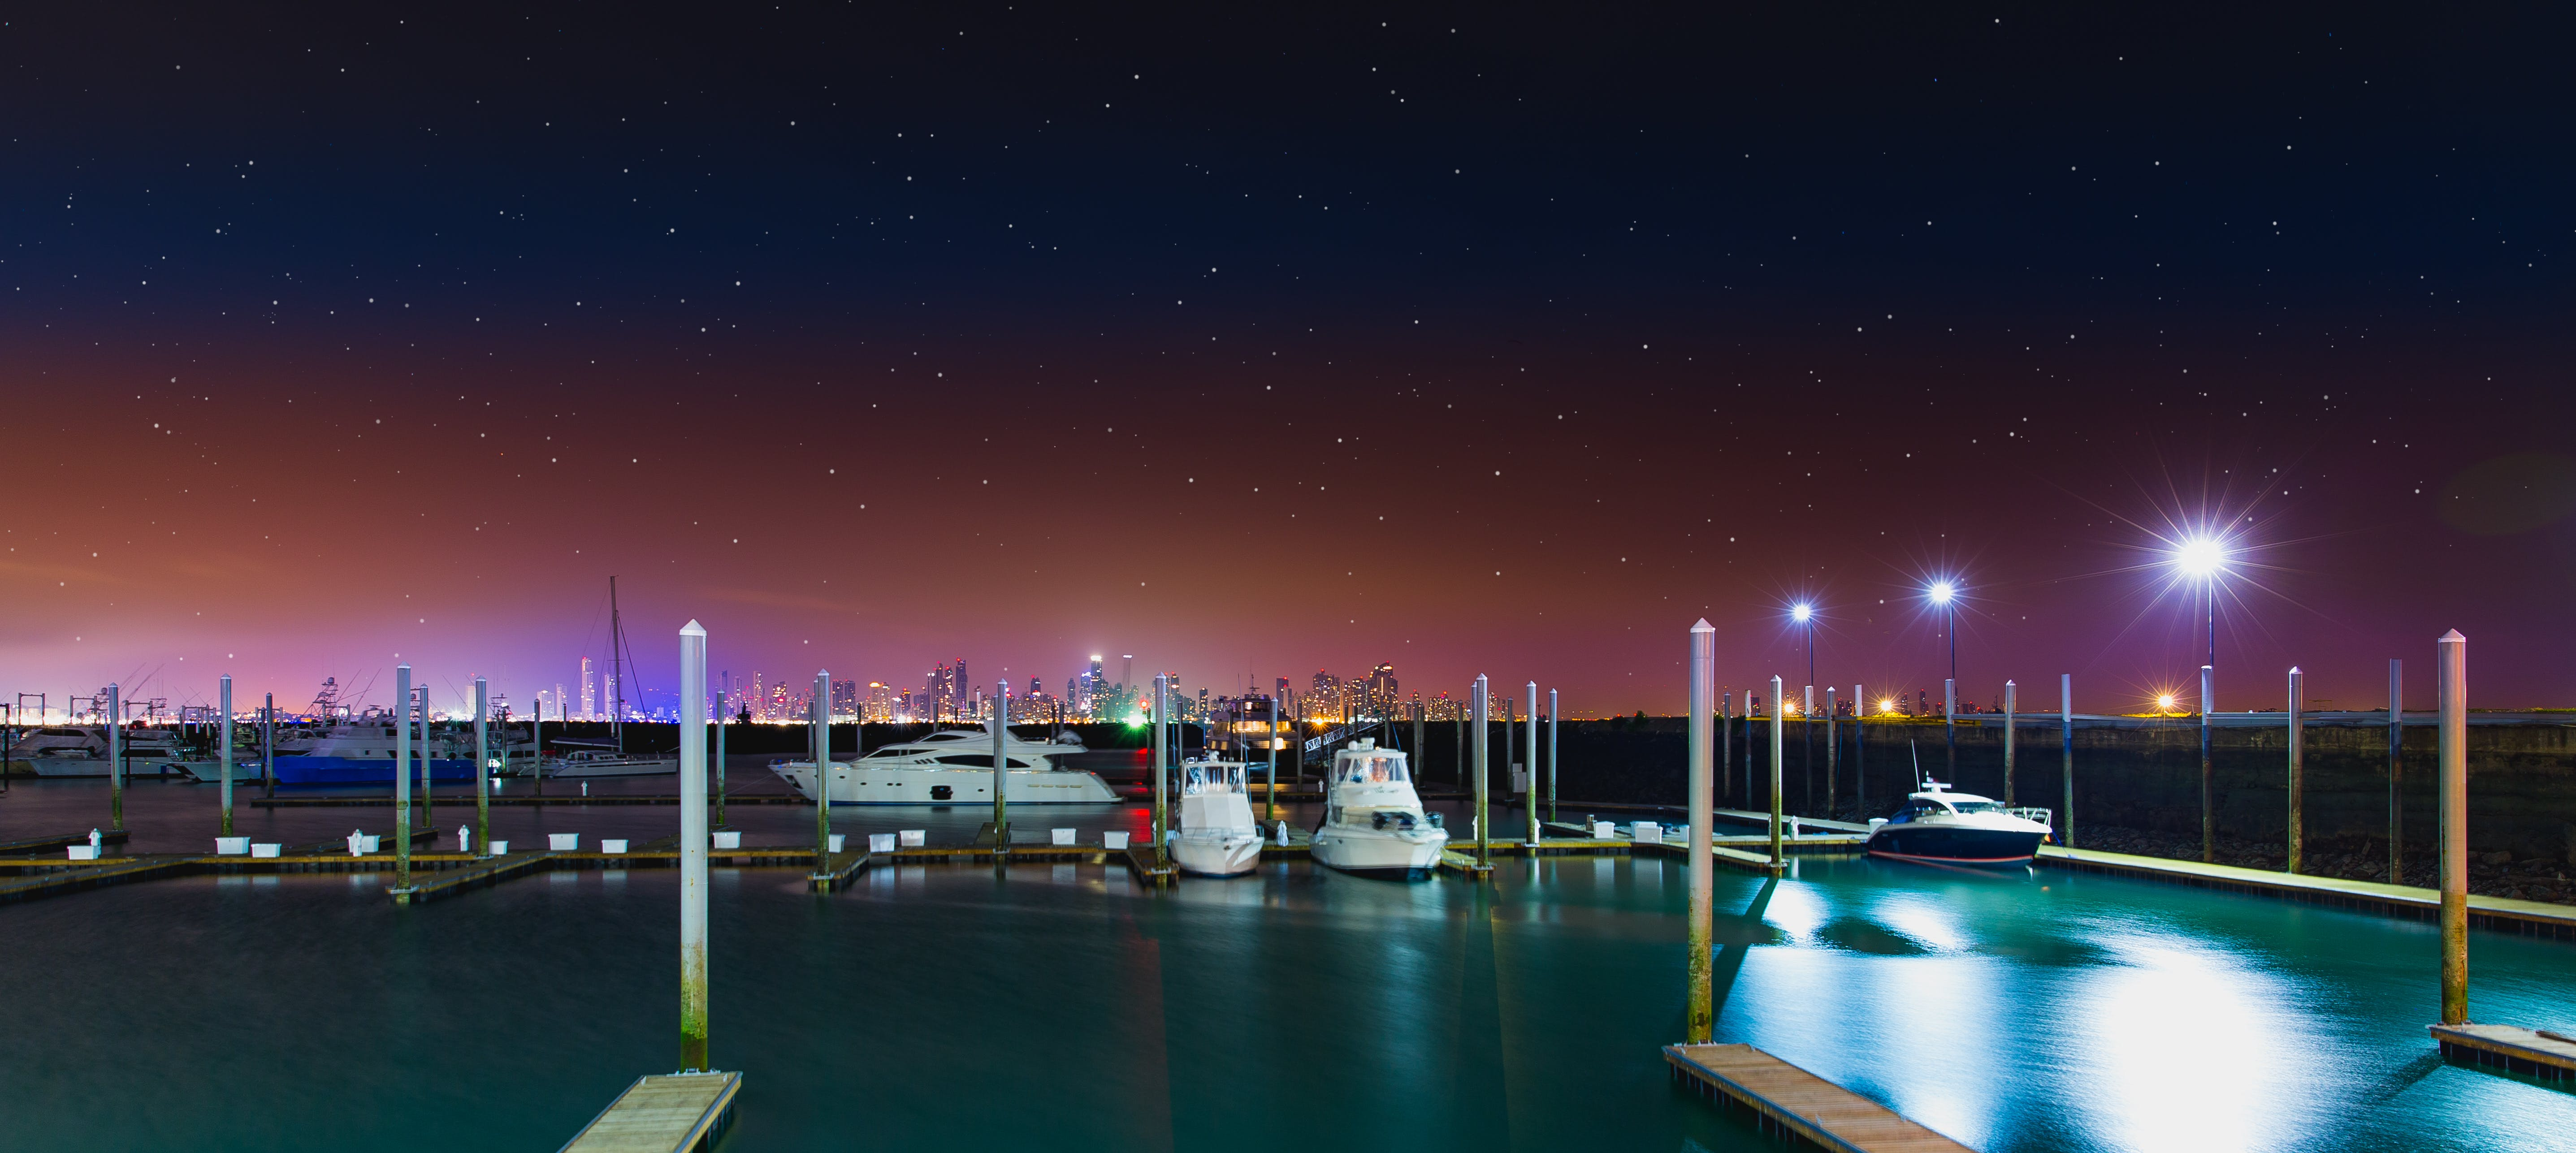 White Yacht at the Dock during Nighttime